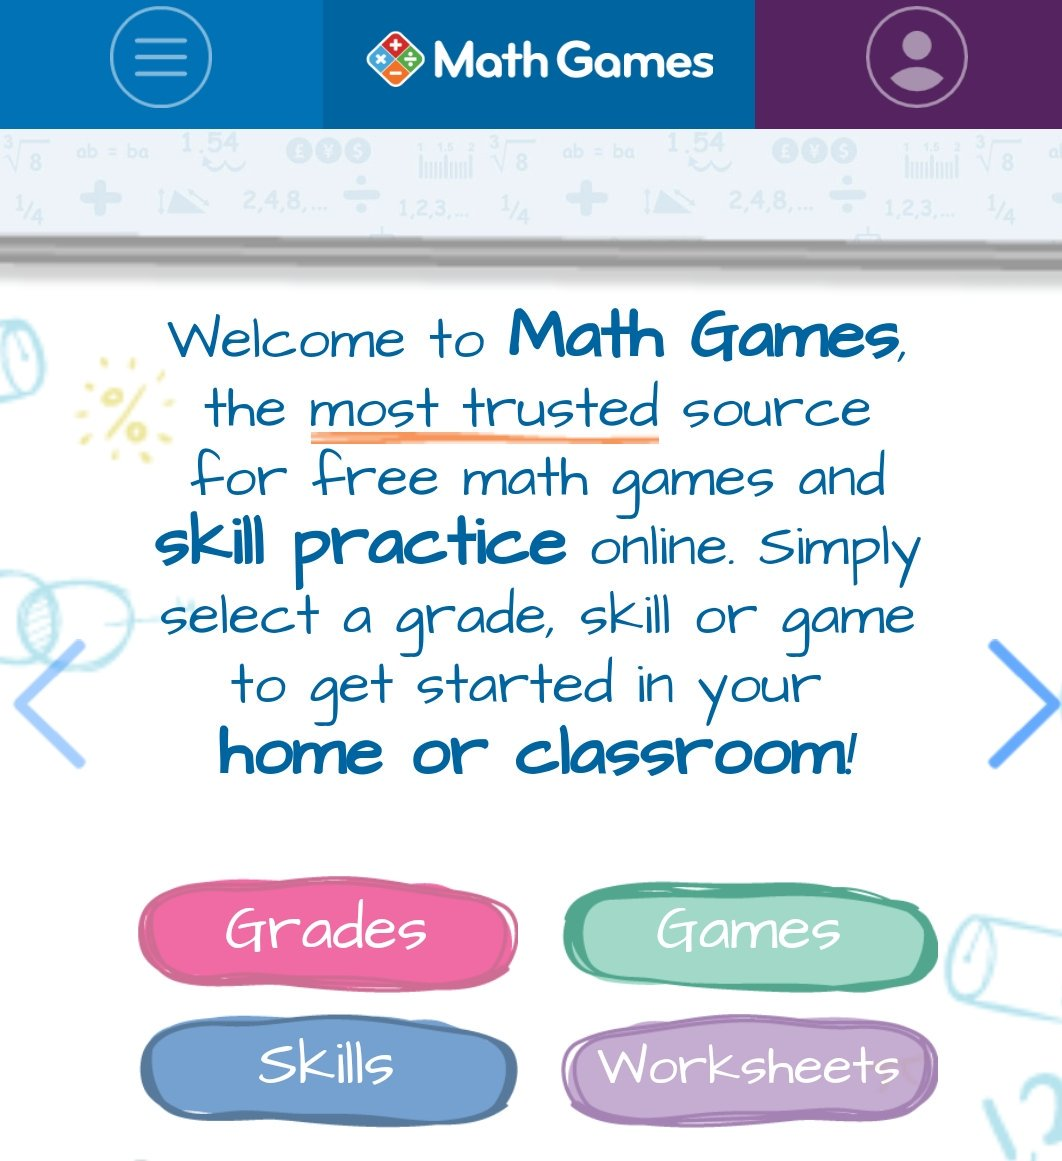 Math Games (@mathgames) | Twitter